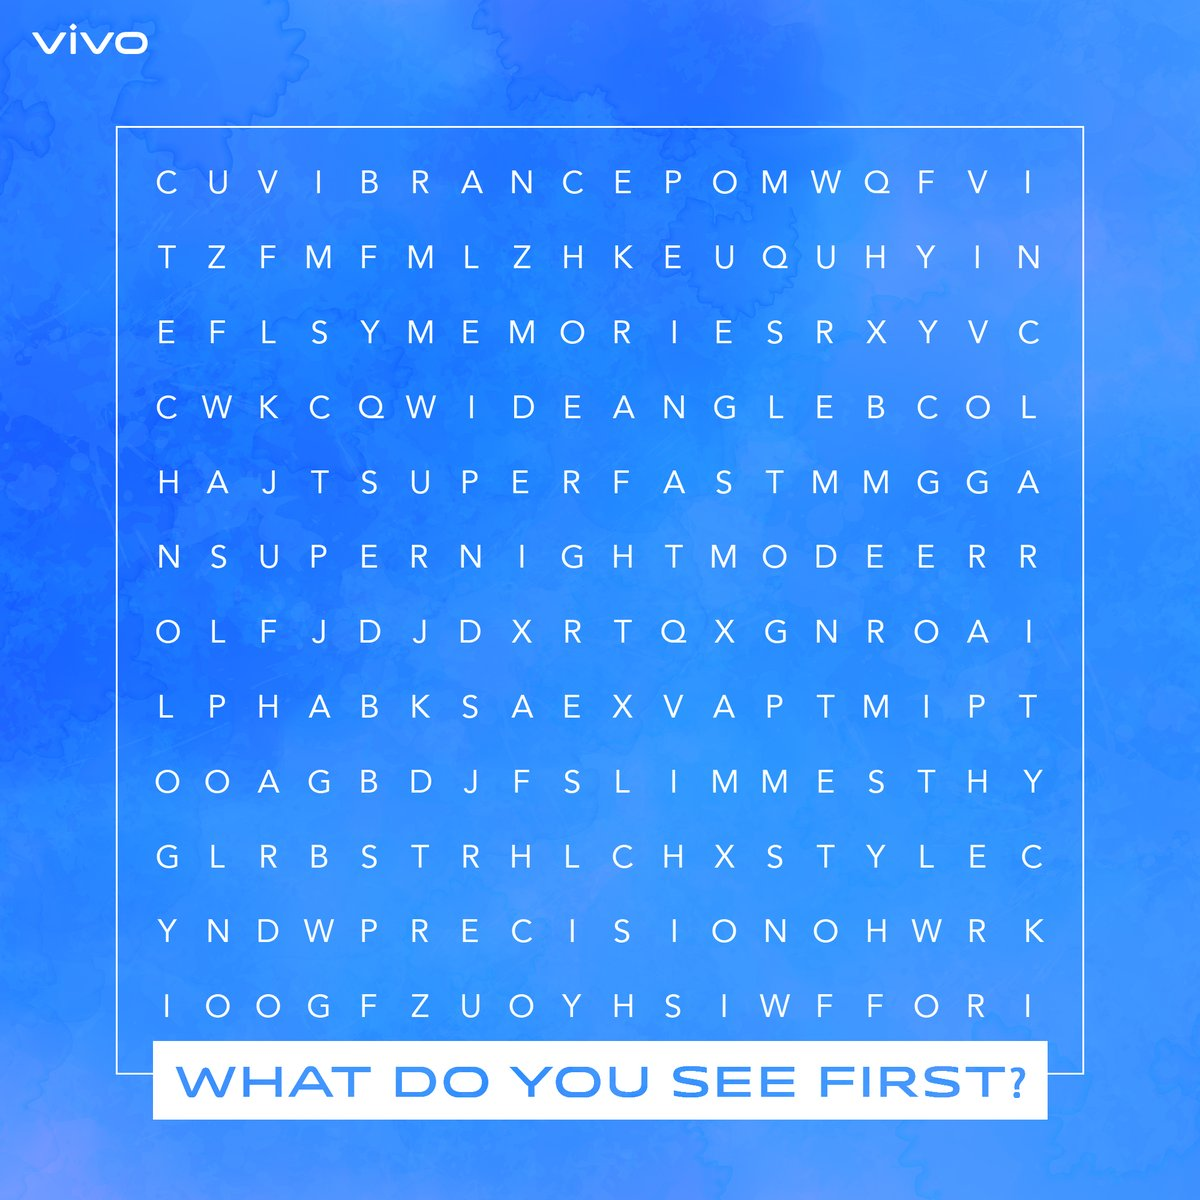 #WorldThesaurusDayClarity, Super Night Mode, Technology, Style, and Precision - some of the words synonymous with #vivo.Comment below which word you see first.